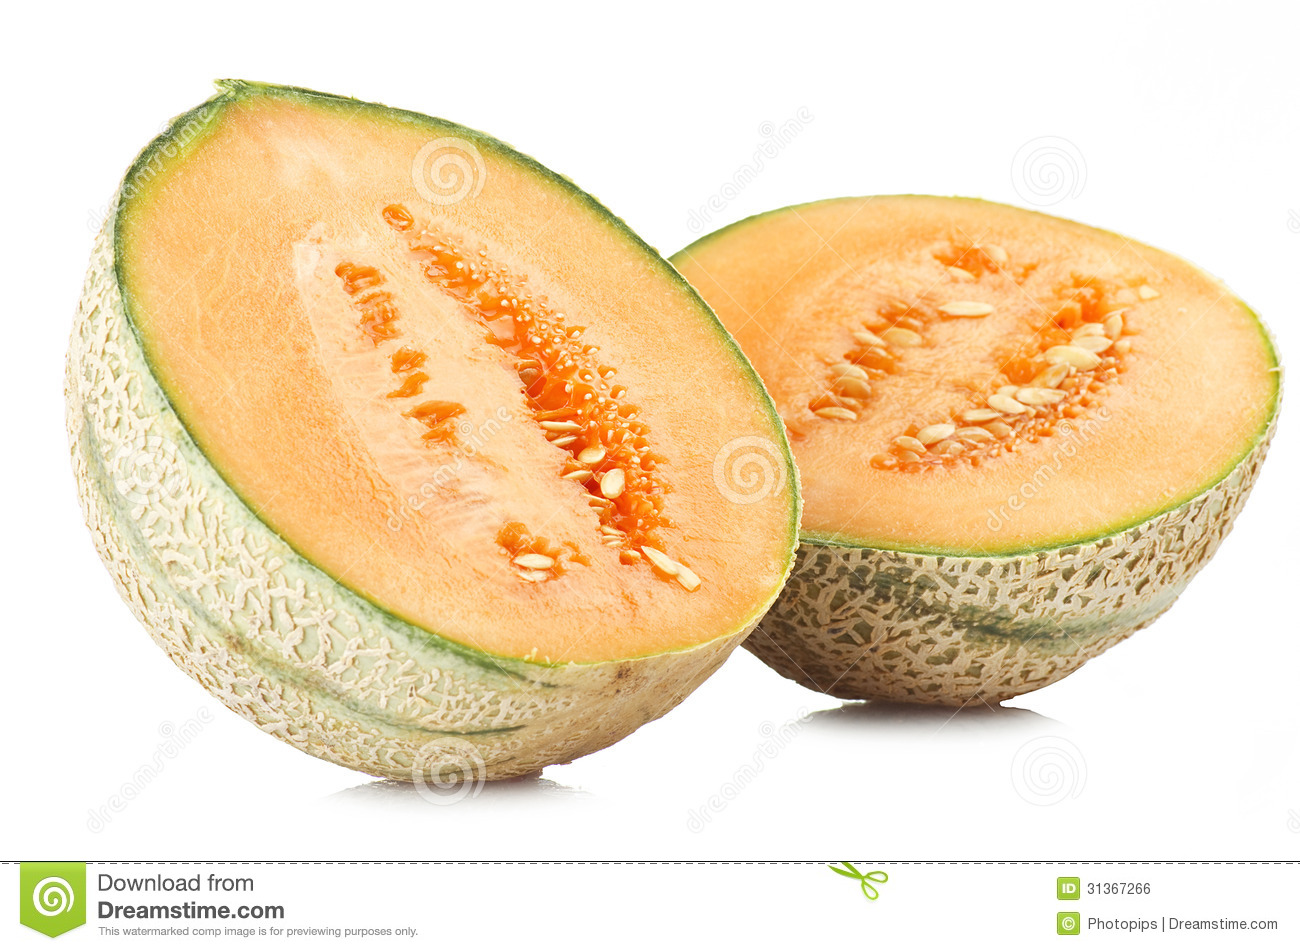 Orange Cantaloupe Melon Stock Photo Image Of Watermelon 31367266 ✓ free for commercial use ✓ high quality images. dreamstime com